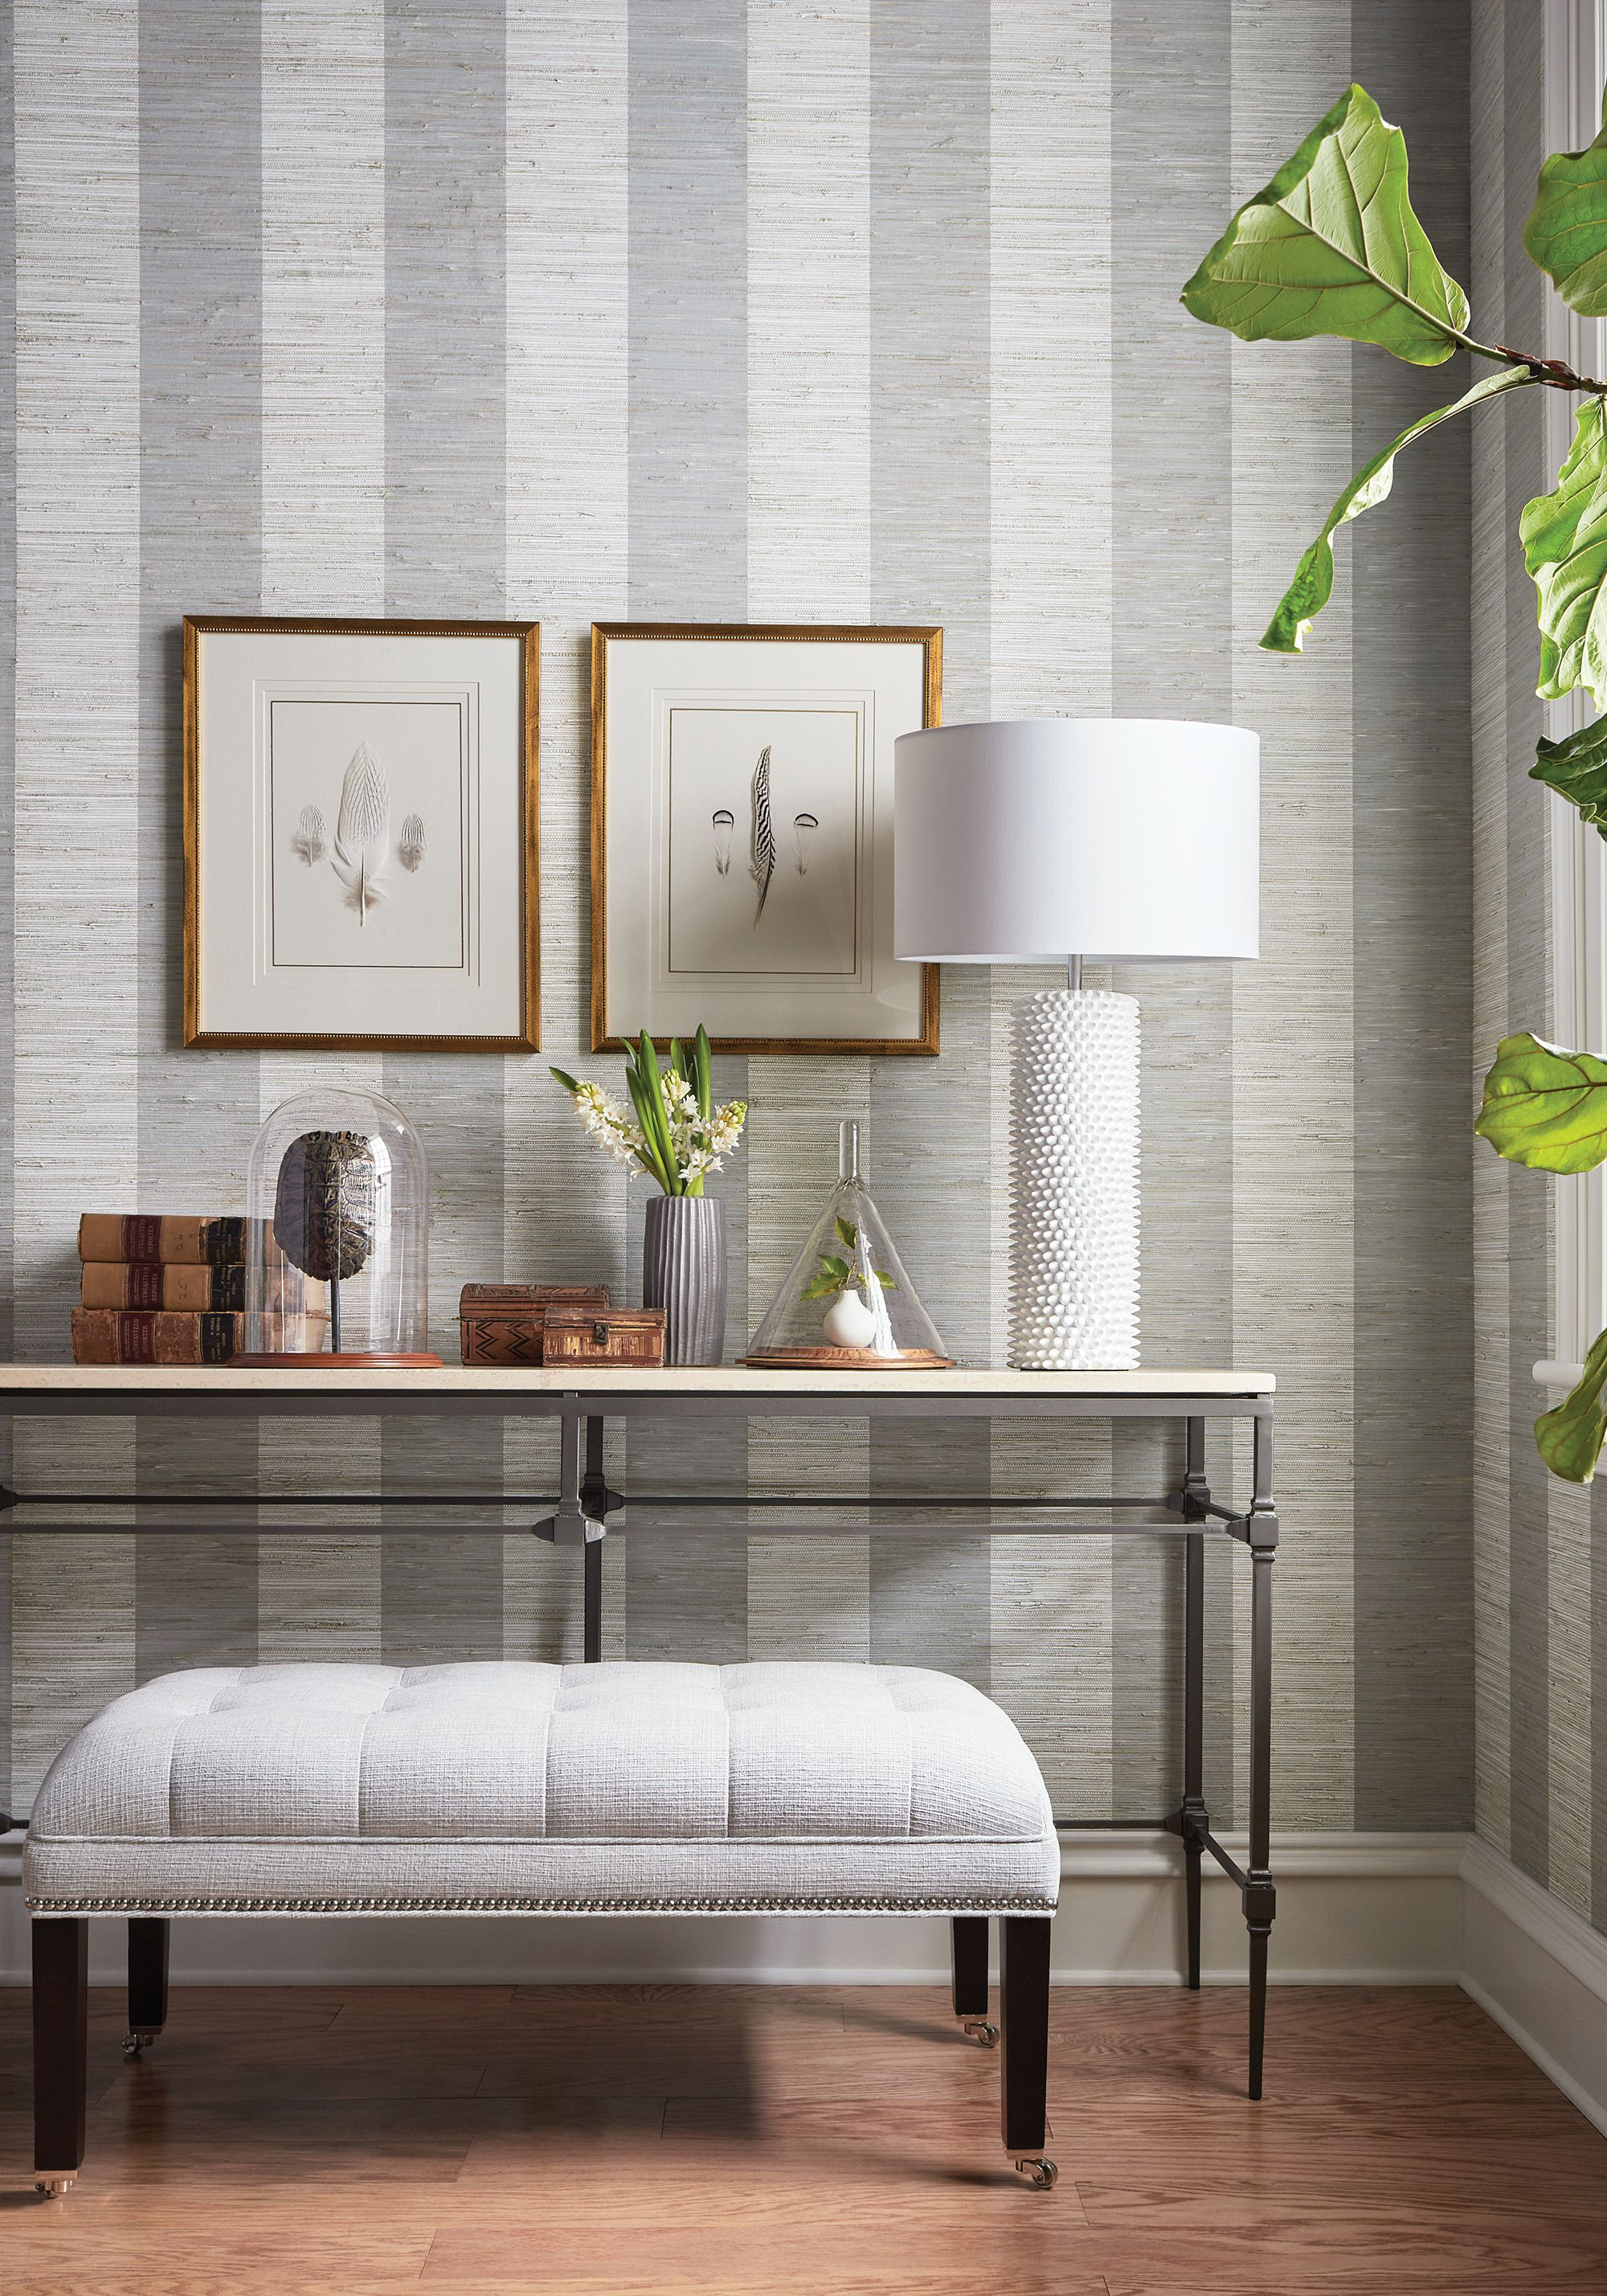 Crossroad Stripe From Grasscloth Resource 4 Collection Wallpaper Living Room Striped Wallpaper Hallway Striped Grasscloth Wallpaper